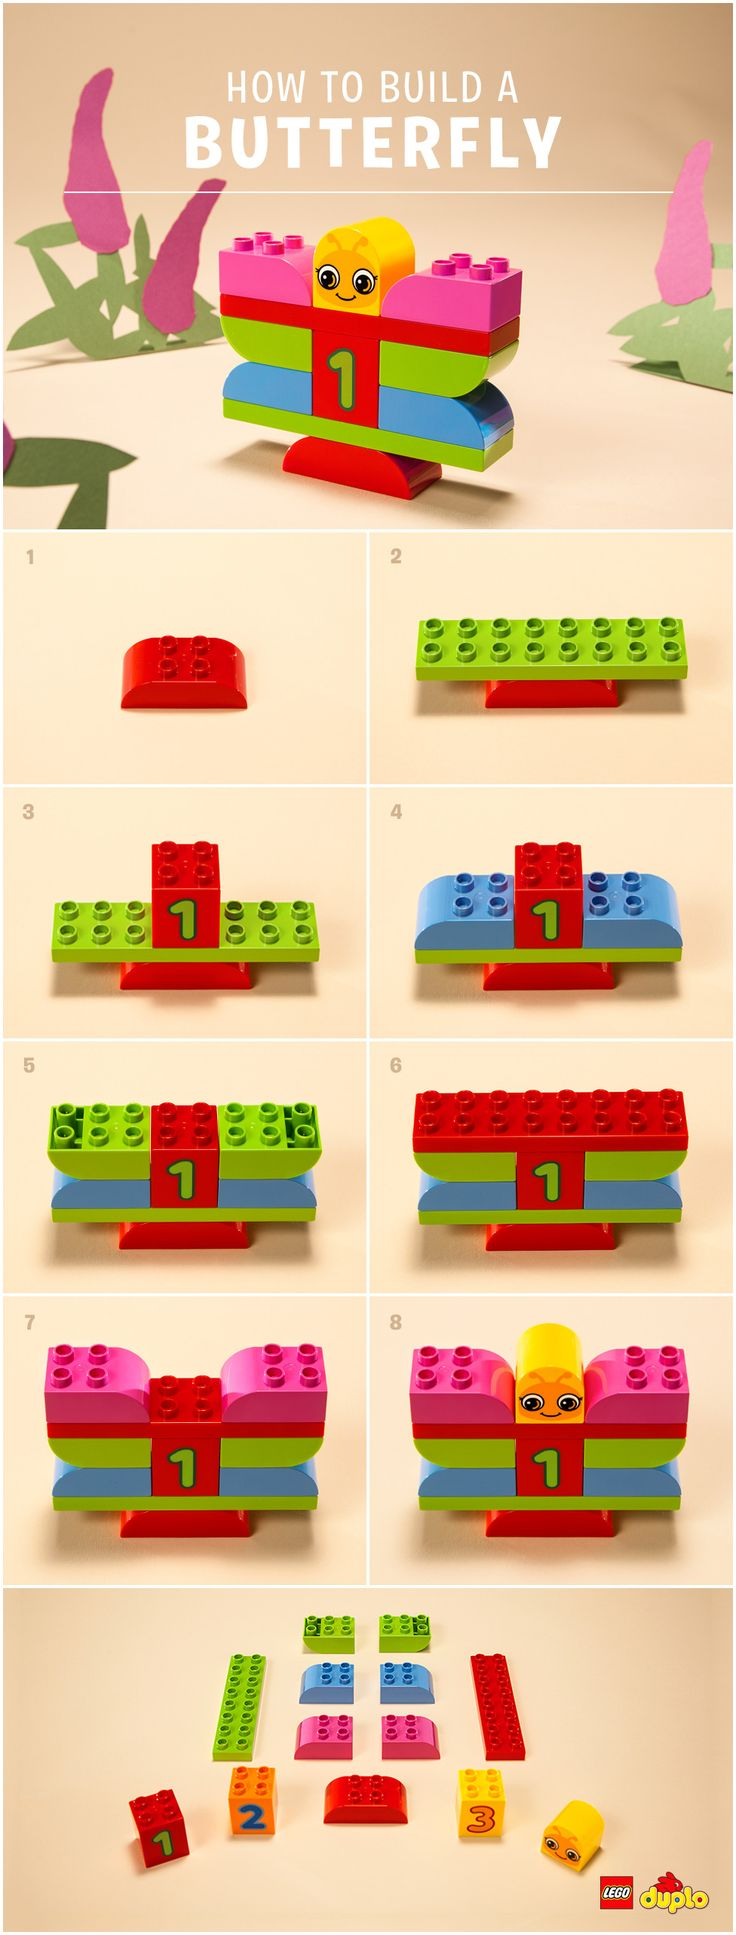 Butterflies are beautiful! But they can also help you and your preschooler explore the notion of change and transformation. Find out how you can build one together: http://www.lego.com/en-us/family/articles/the-no-mess-art-project-youll-both-love-cb0dbb2d678449059a8229ab5a7d37e3